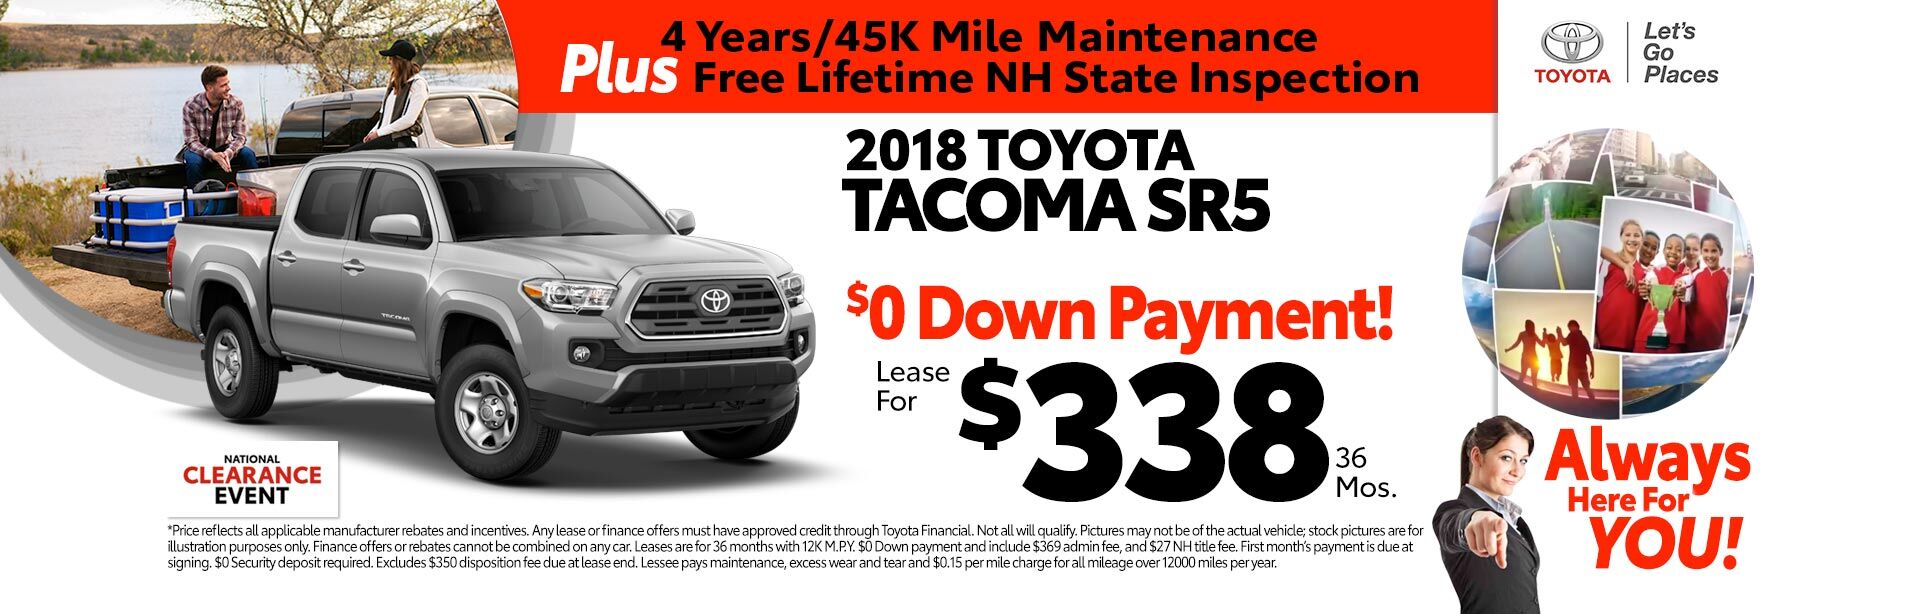 2018 Toyota Tacoma SR5 for as low as $338 a month for 36 months